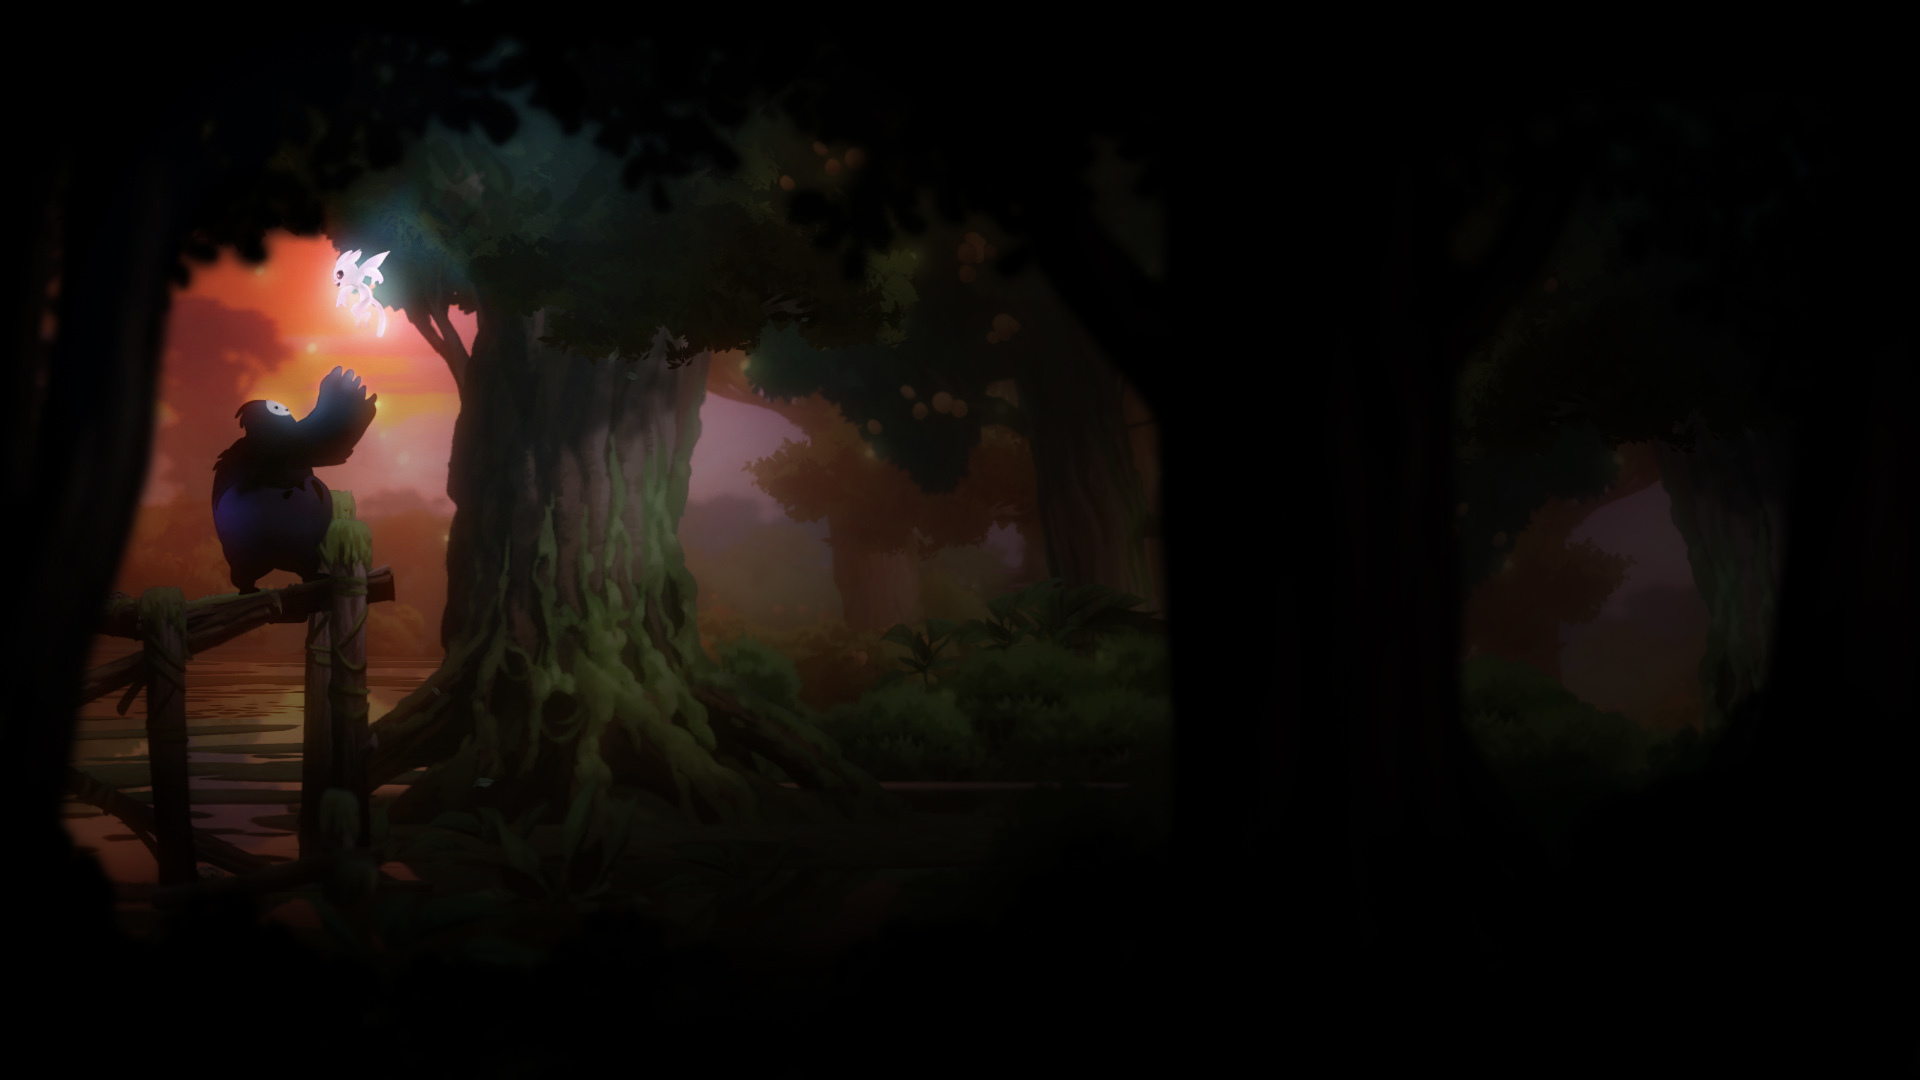 Ori And The Blind Forest Hd Wallpaper 2180434 Zerochan Anime